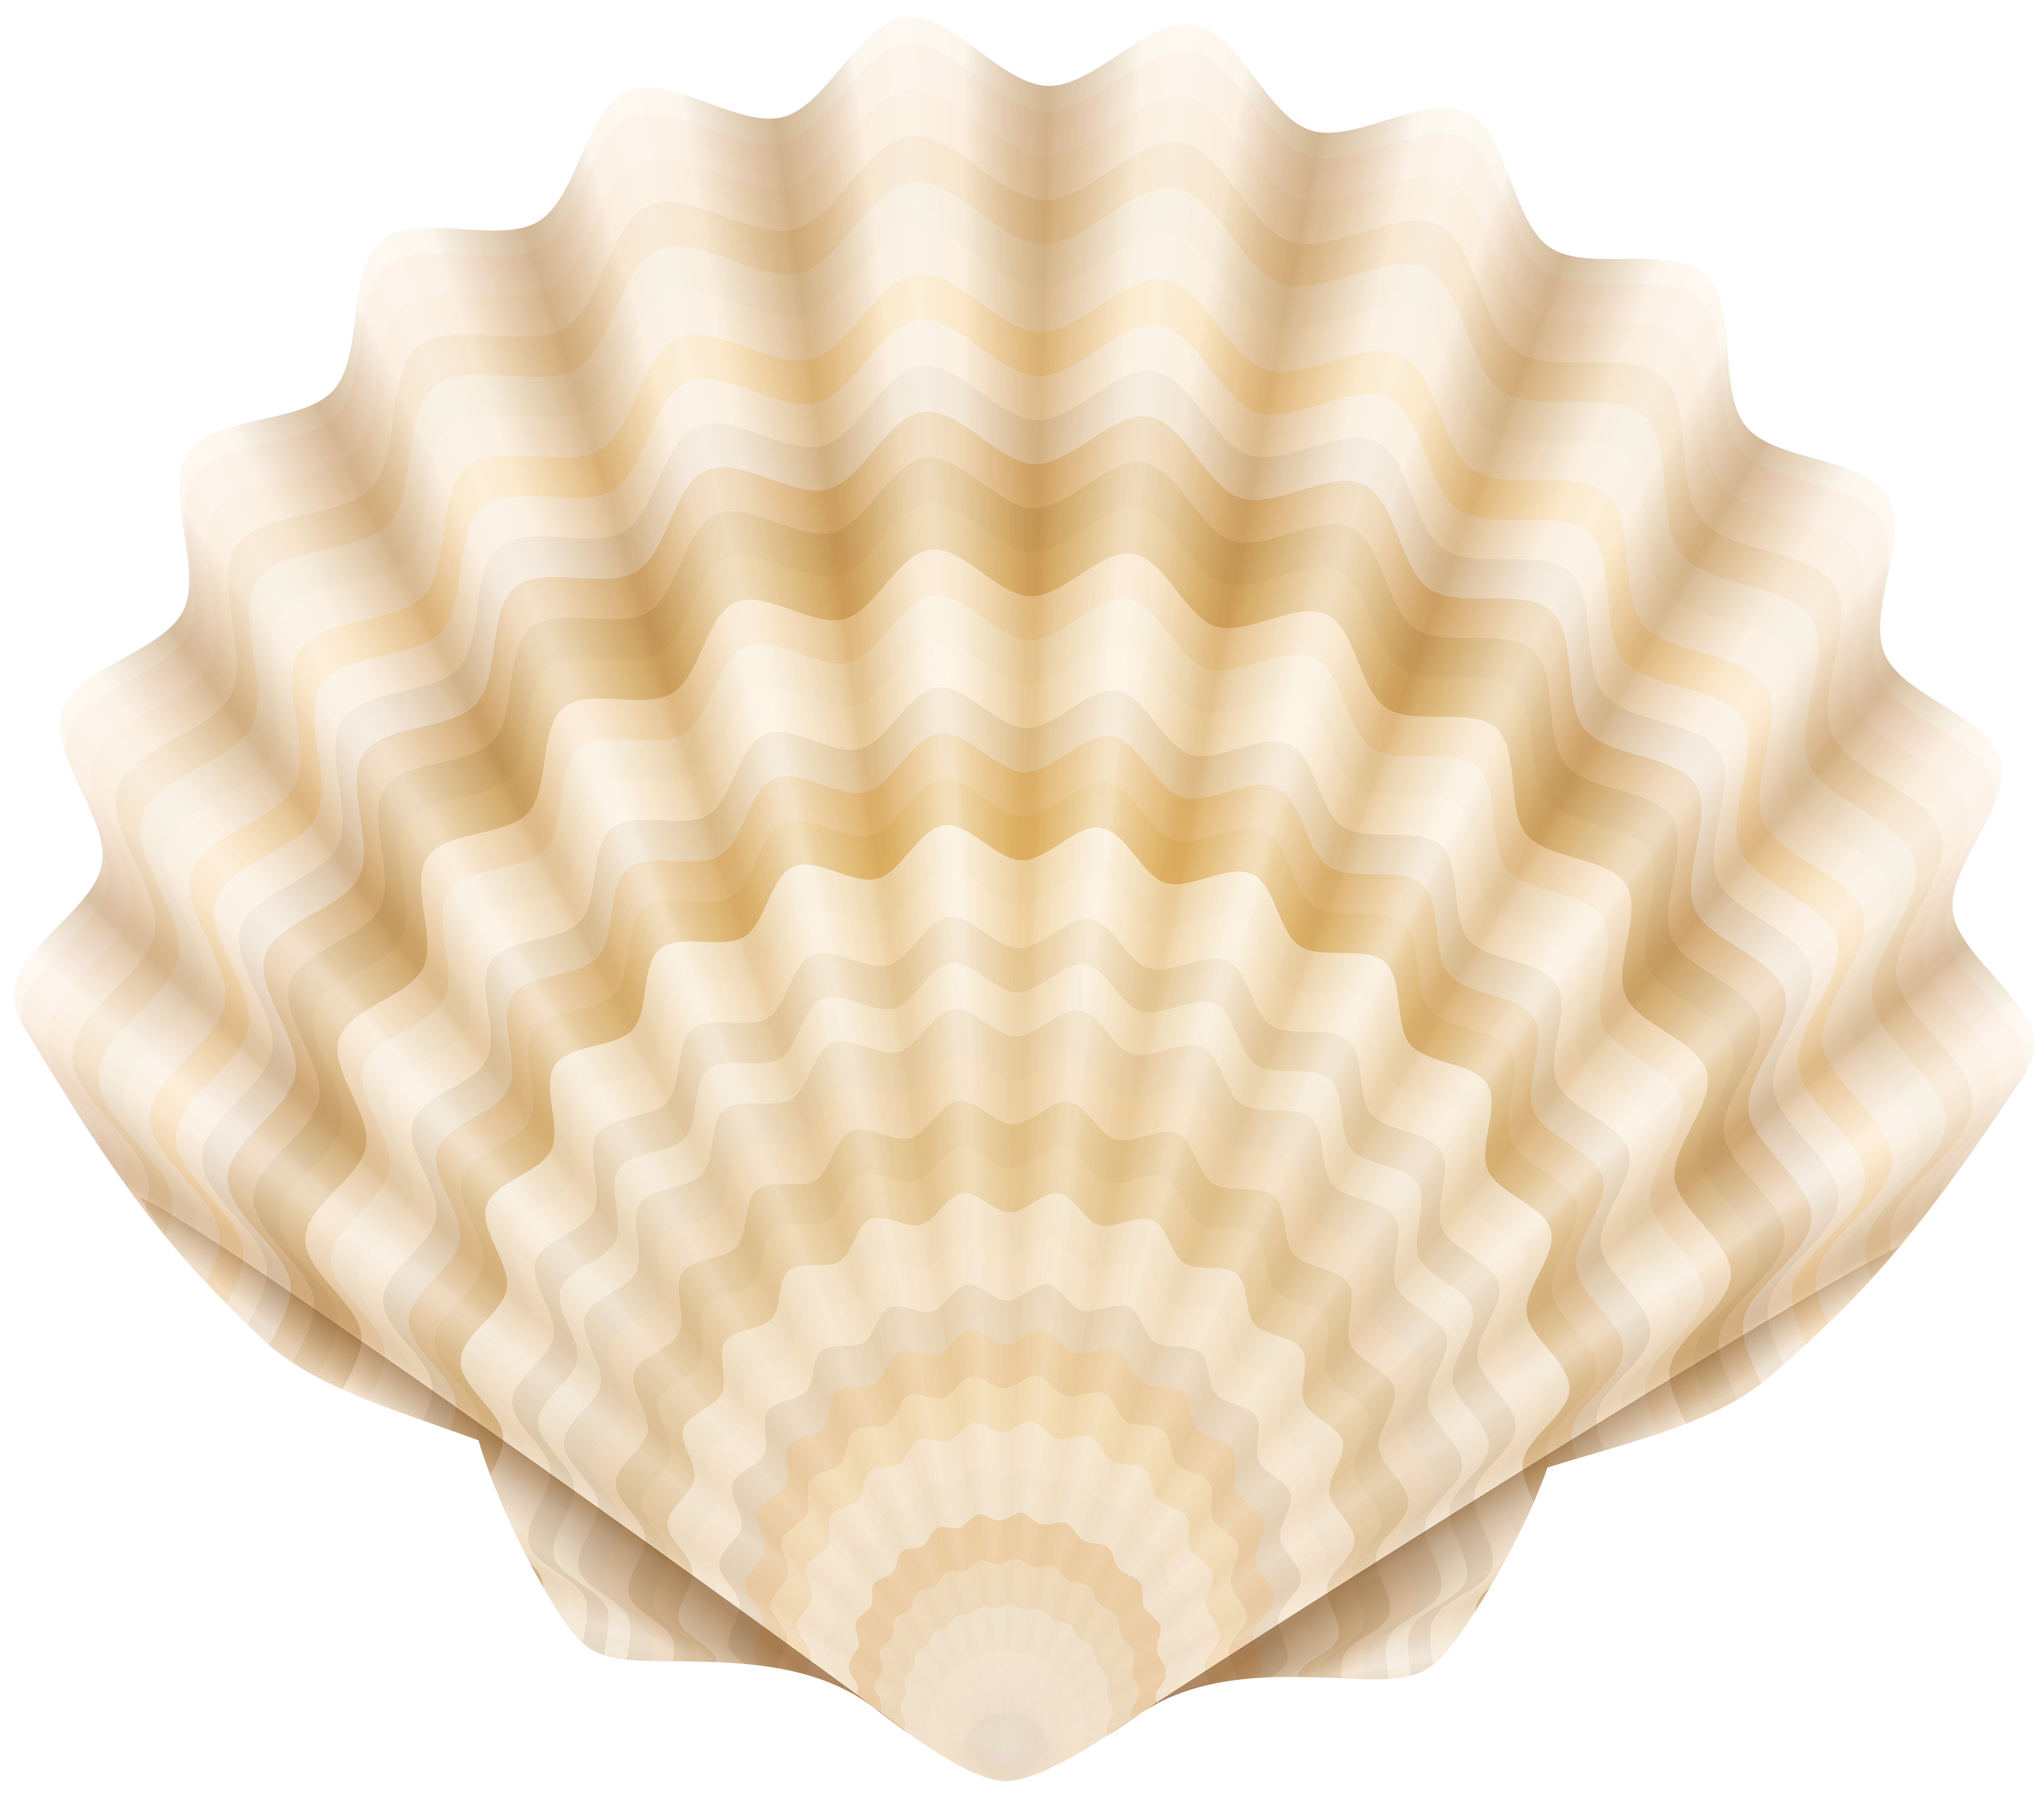 image free download Clam clipart clamshell. Clip art of just.